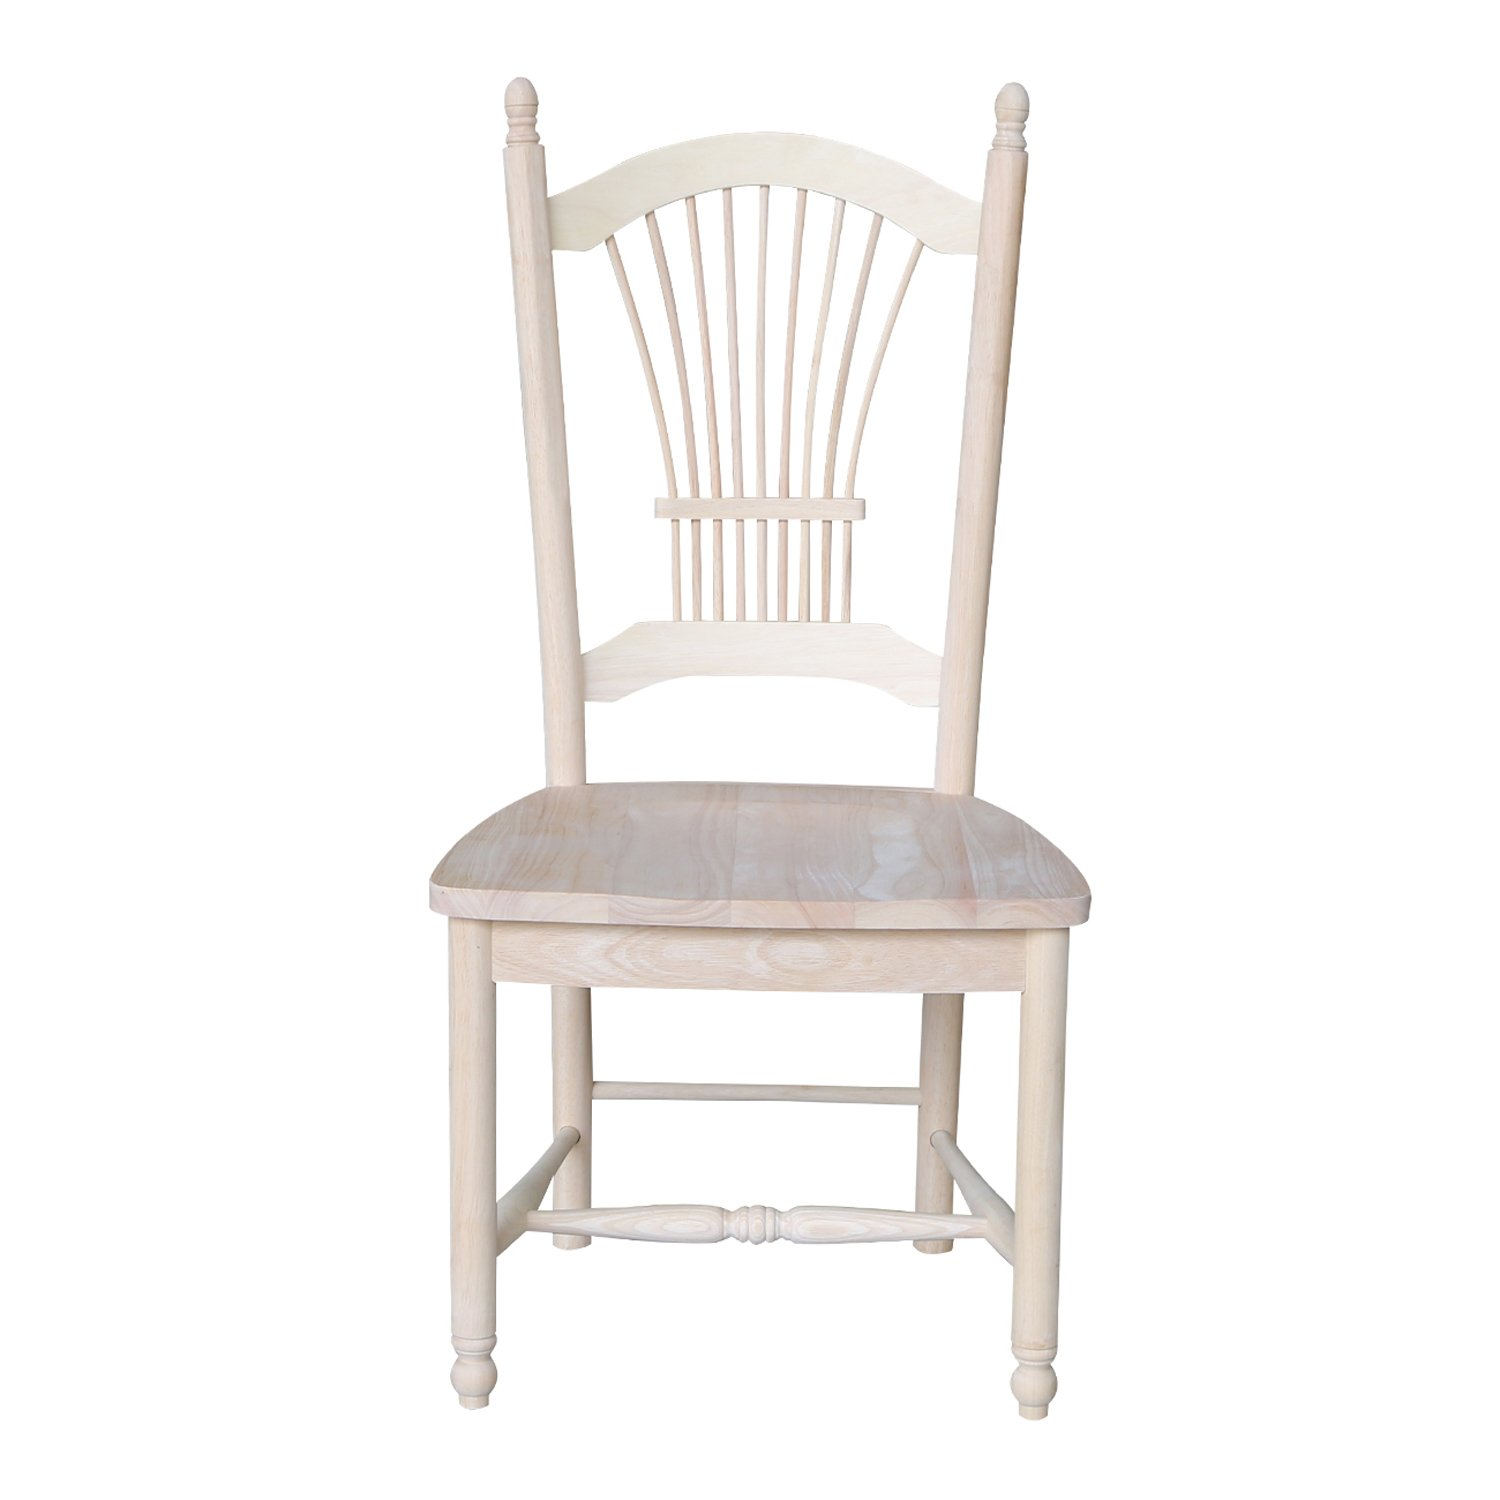 International Concepts C-16029 Sheaf Back Chair, Unfinished